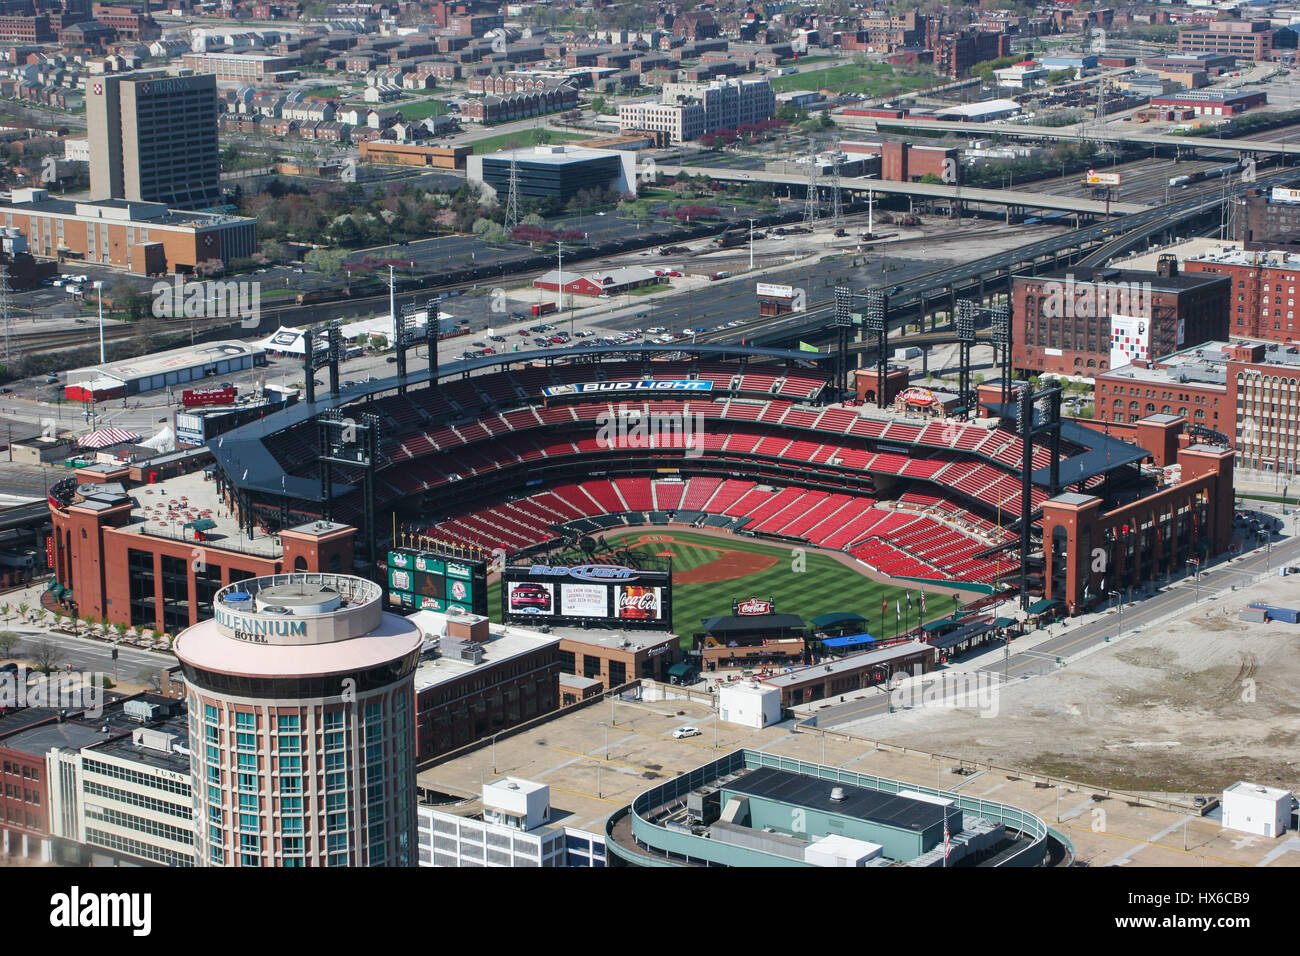 St. Louis - Circa May 2008: Busch Stadium - Home of the Cardinals - from the top of the Gateway Arch I - Stock Image